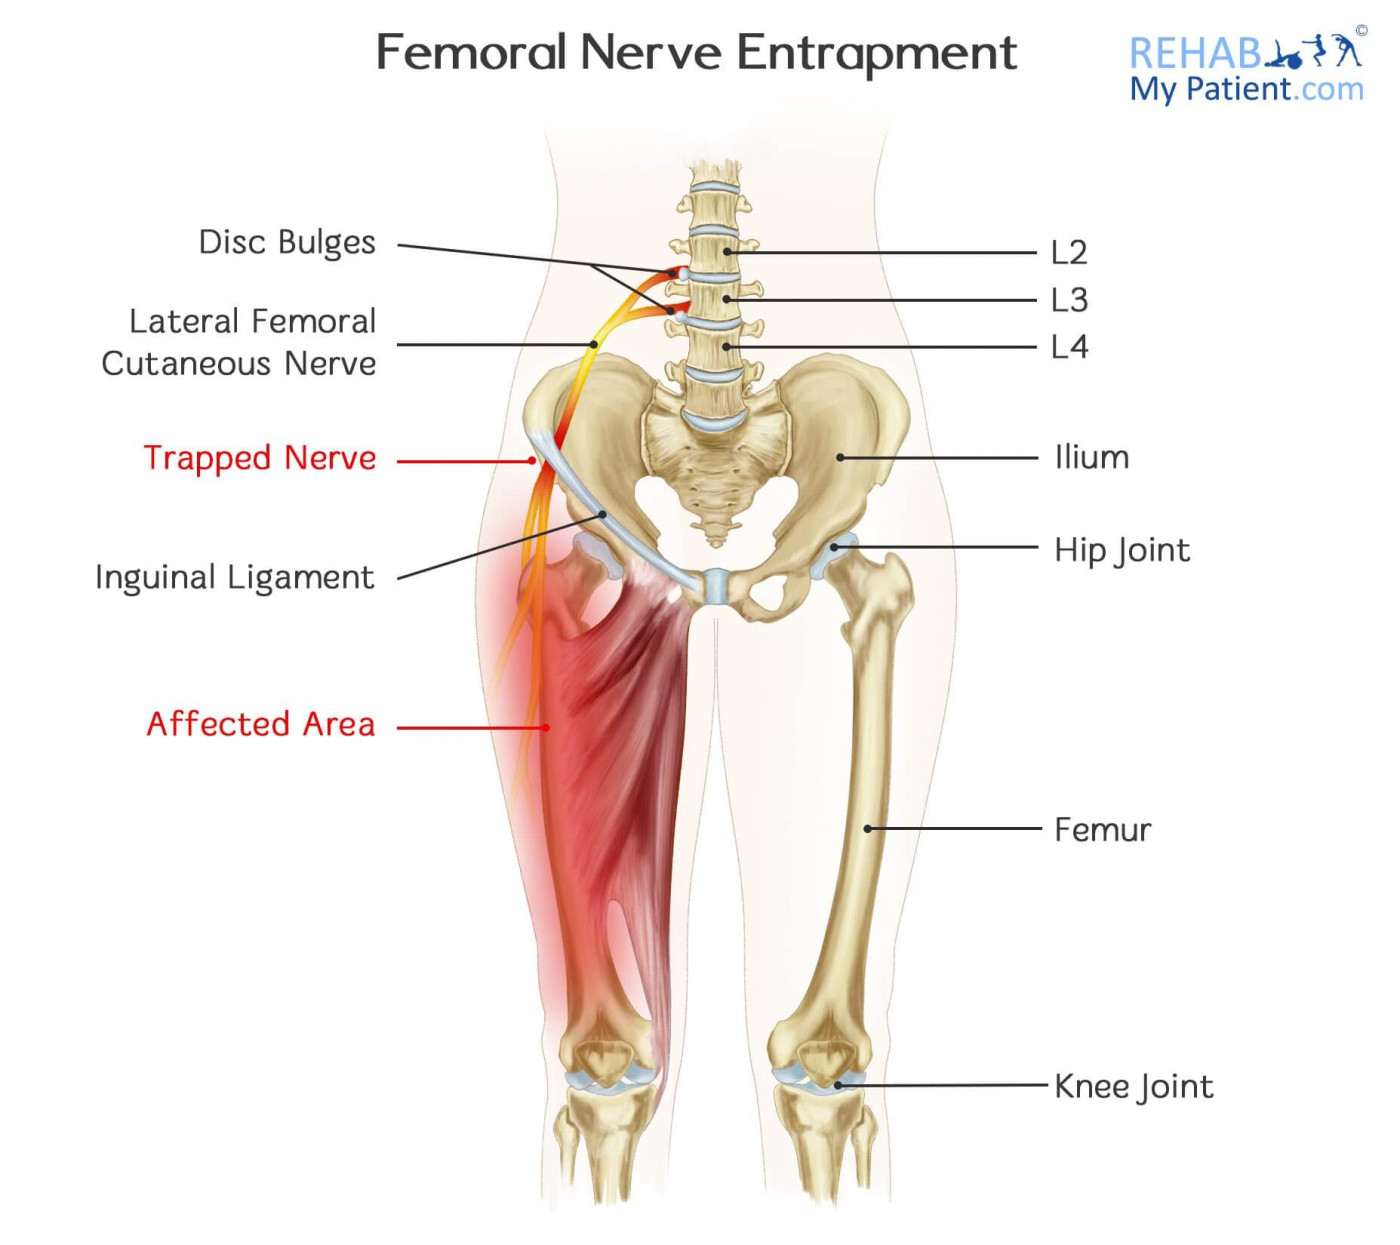 Femoral nerve entrapment rehab my patient how to treat femoral nerve entrapment pooptronica Image collections